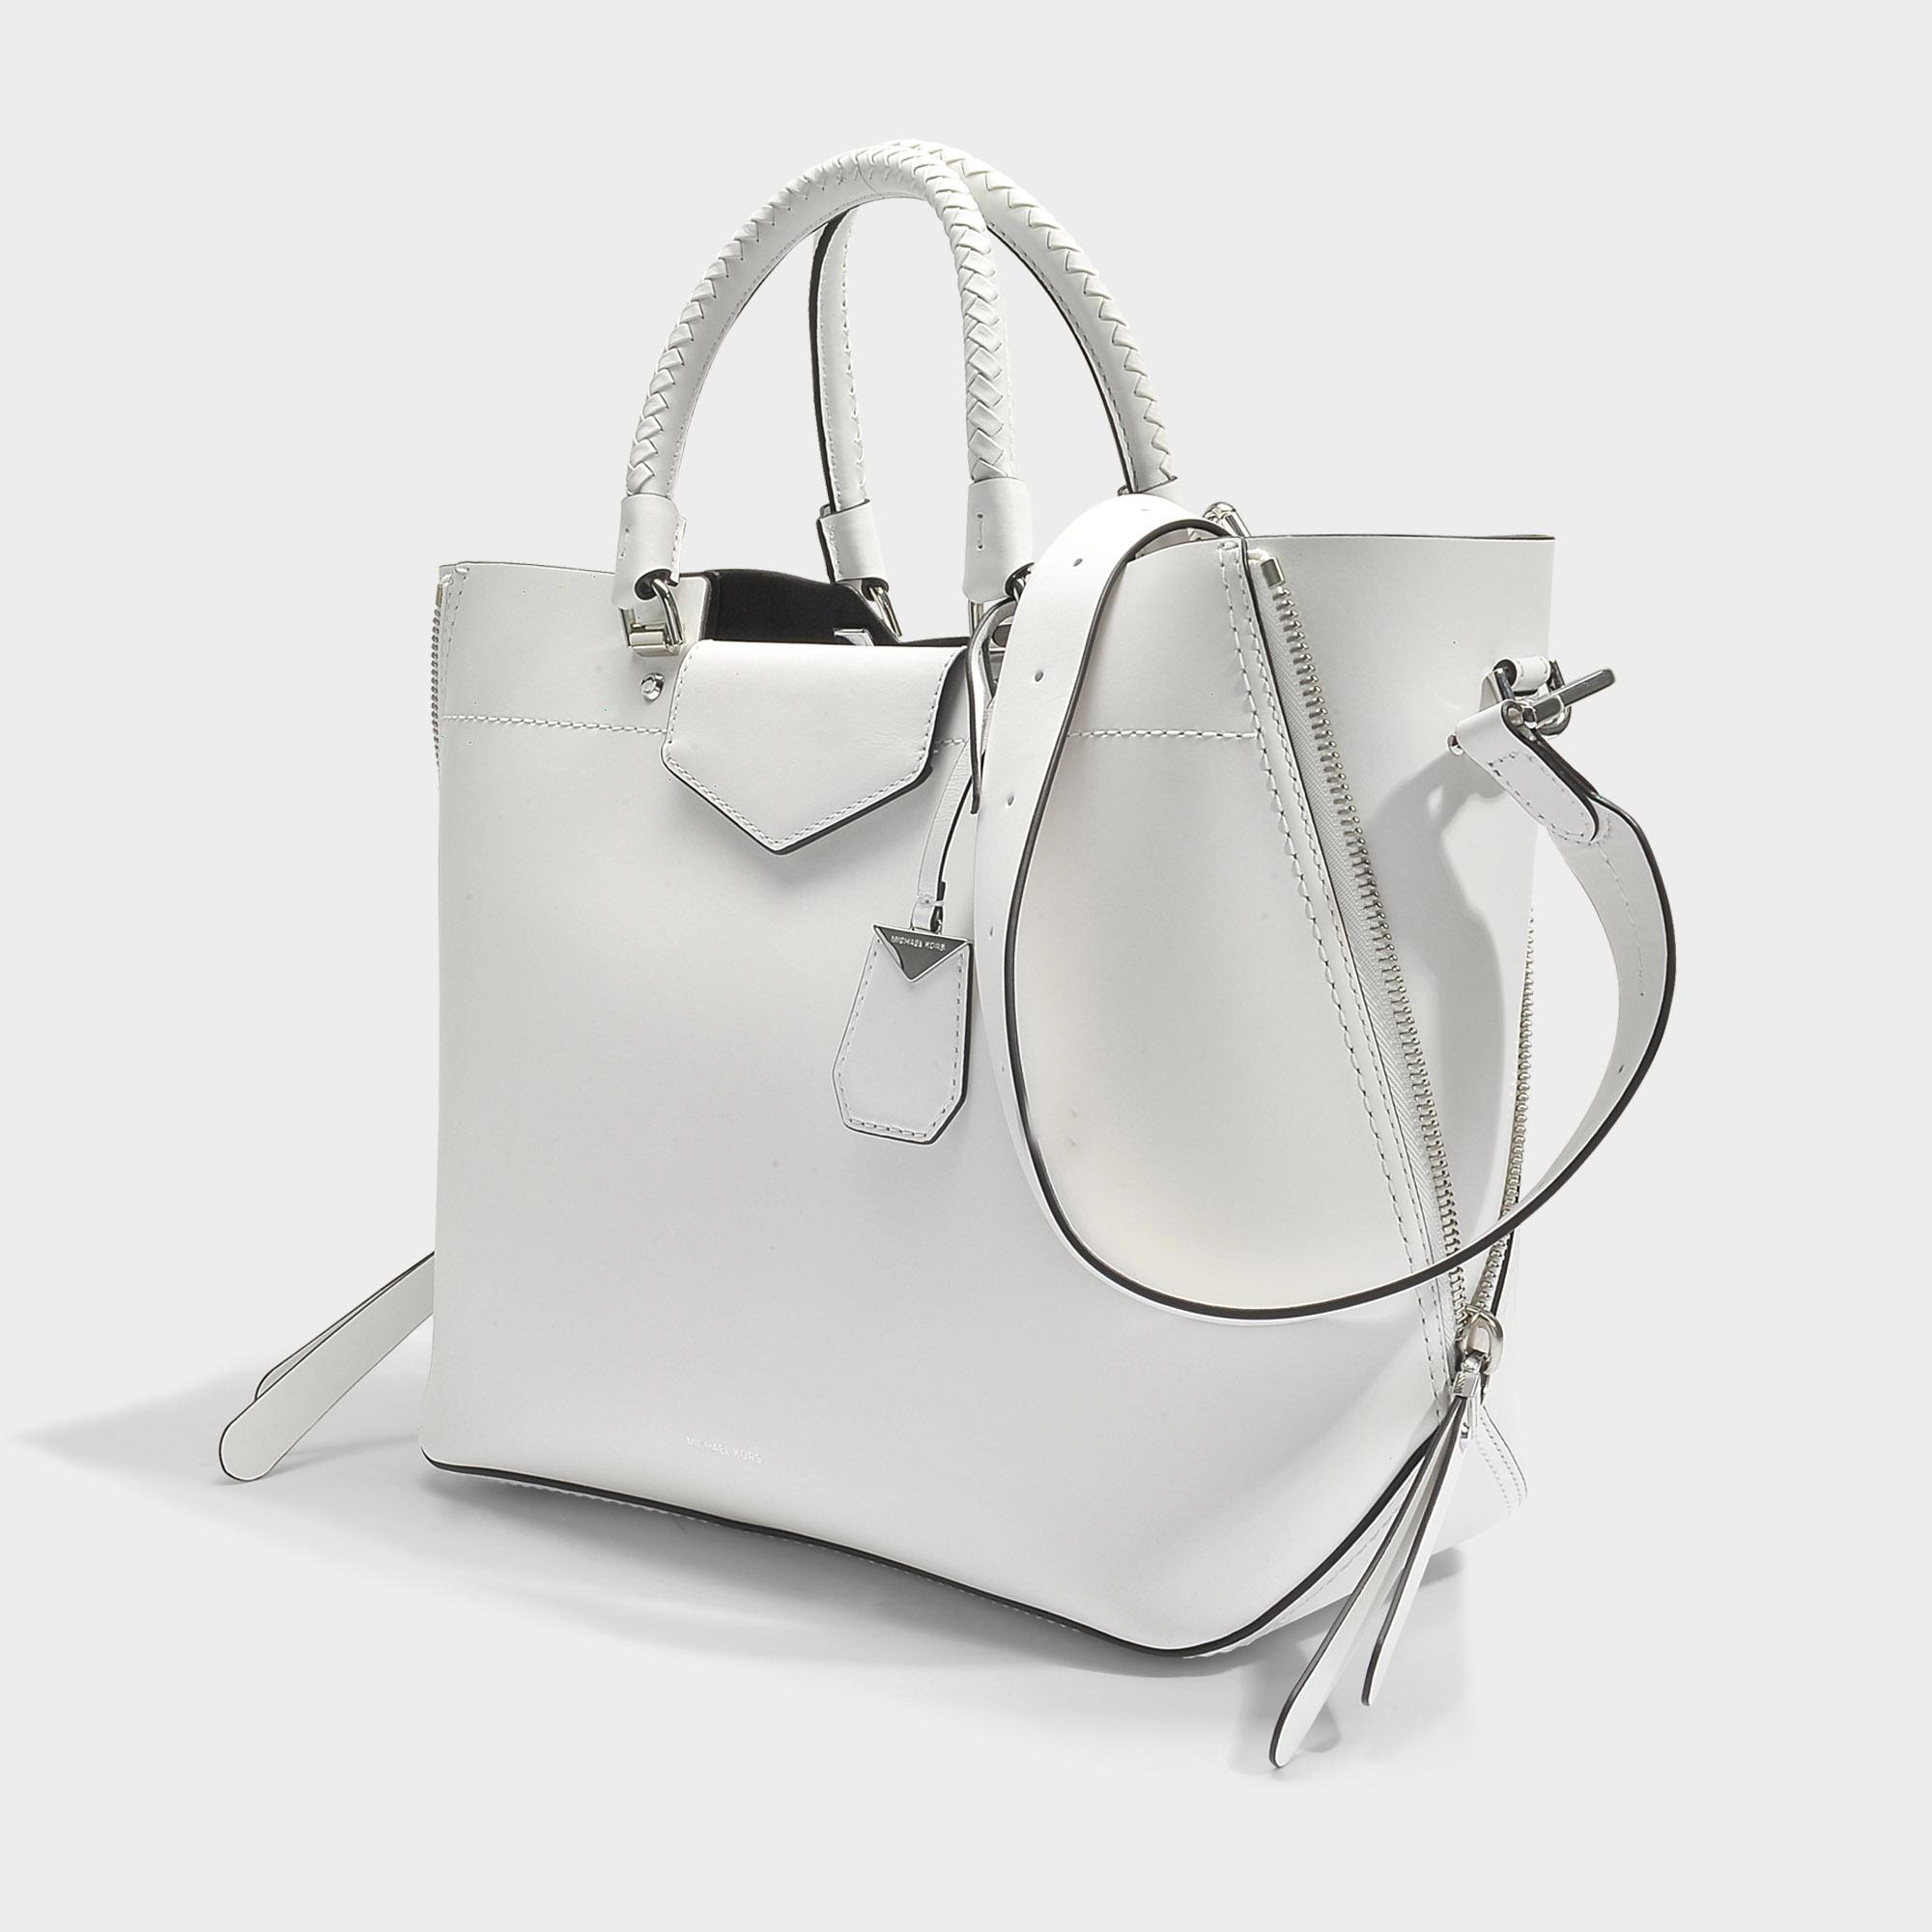 8768eb540477 Lyst - MICHAEL Michael Kors Blakely Large Tote Bag In Optic White ...